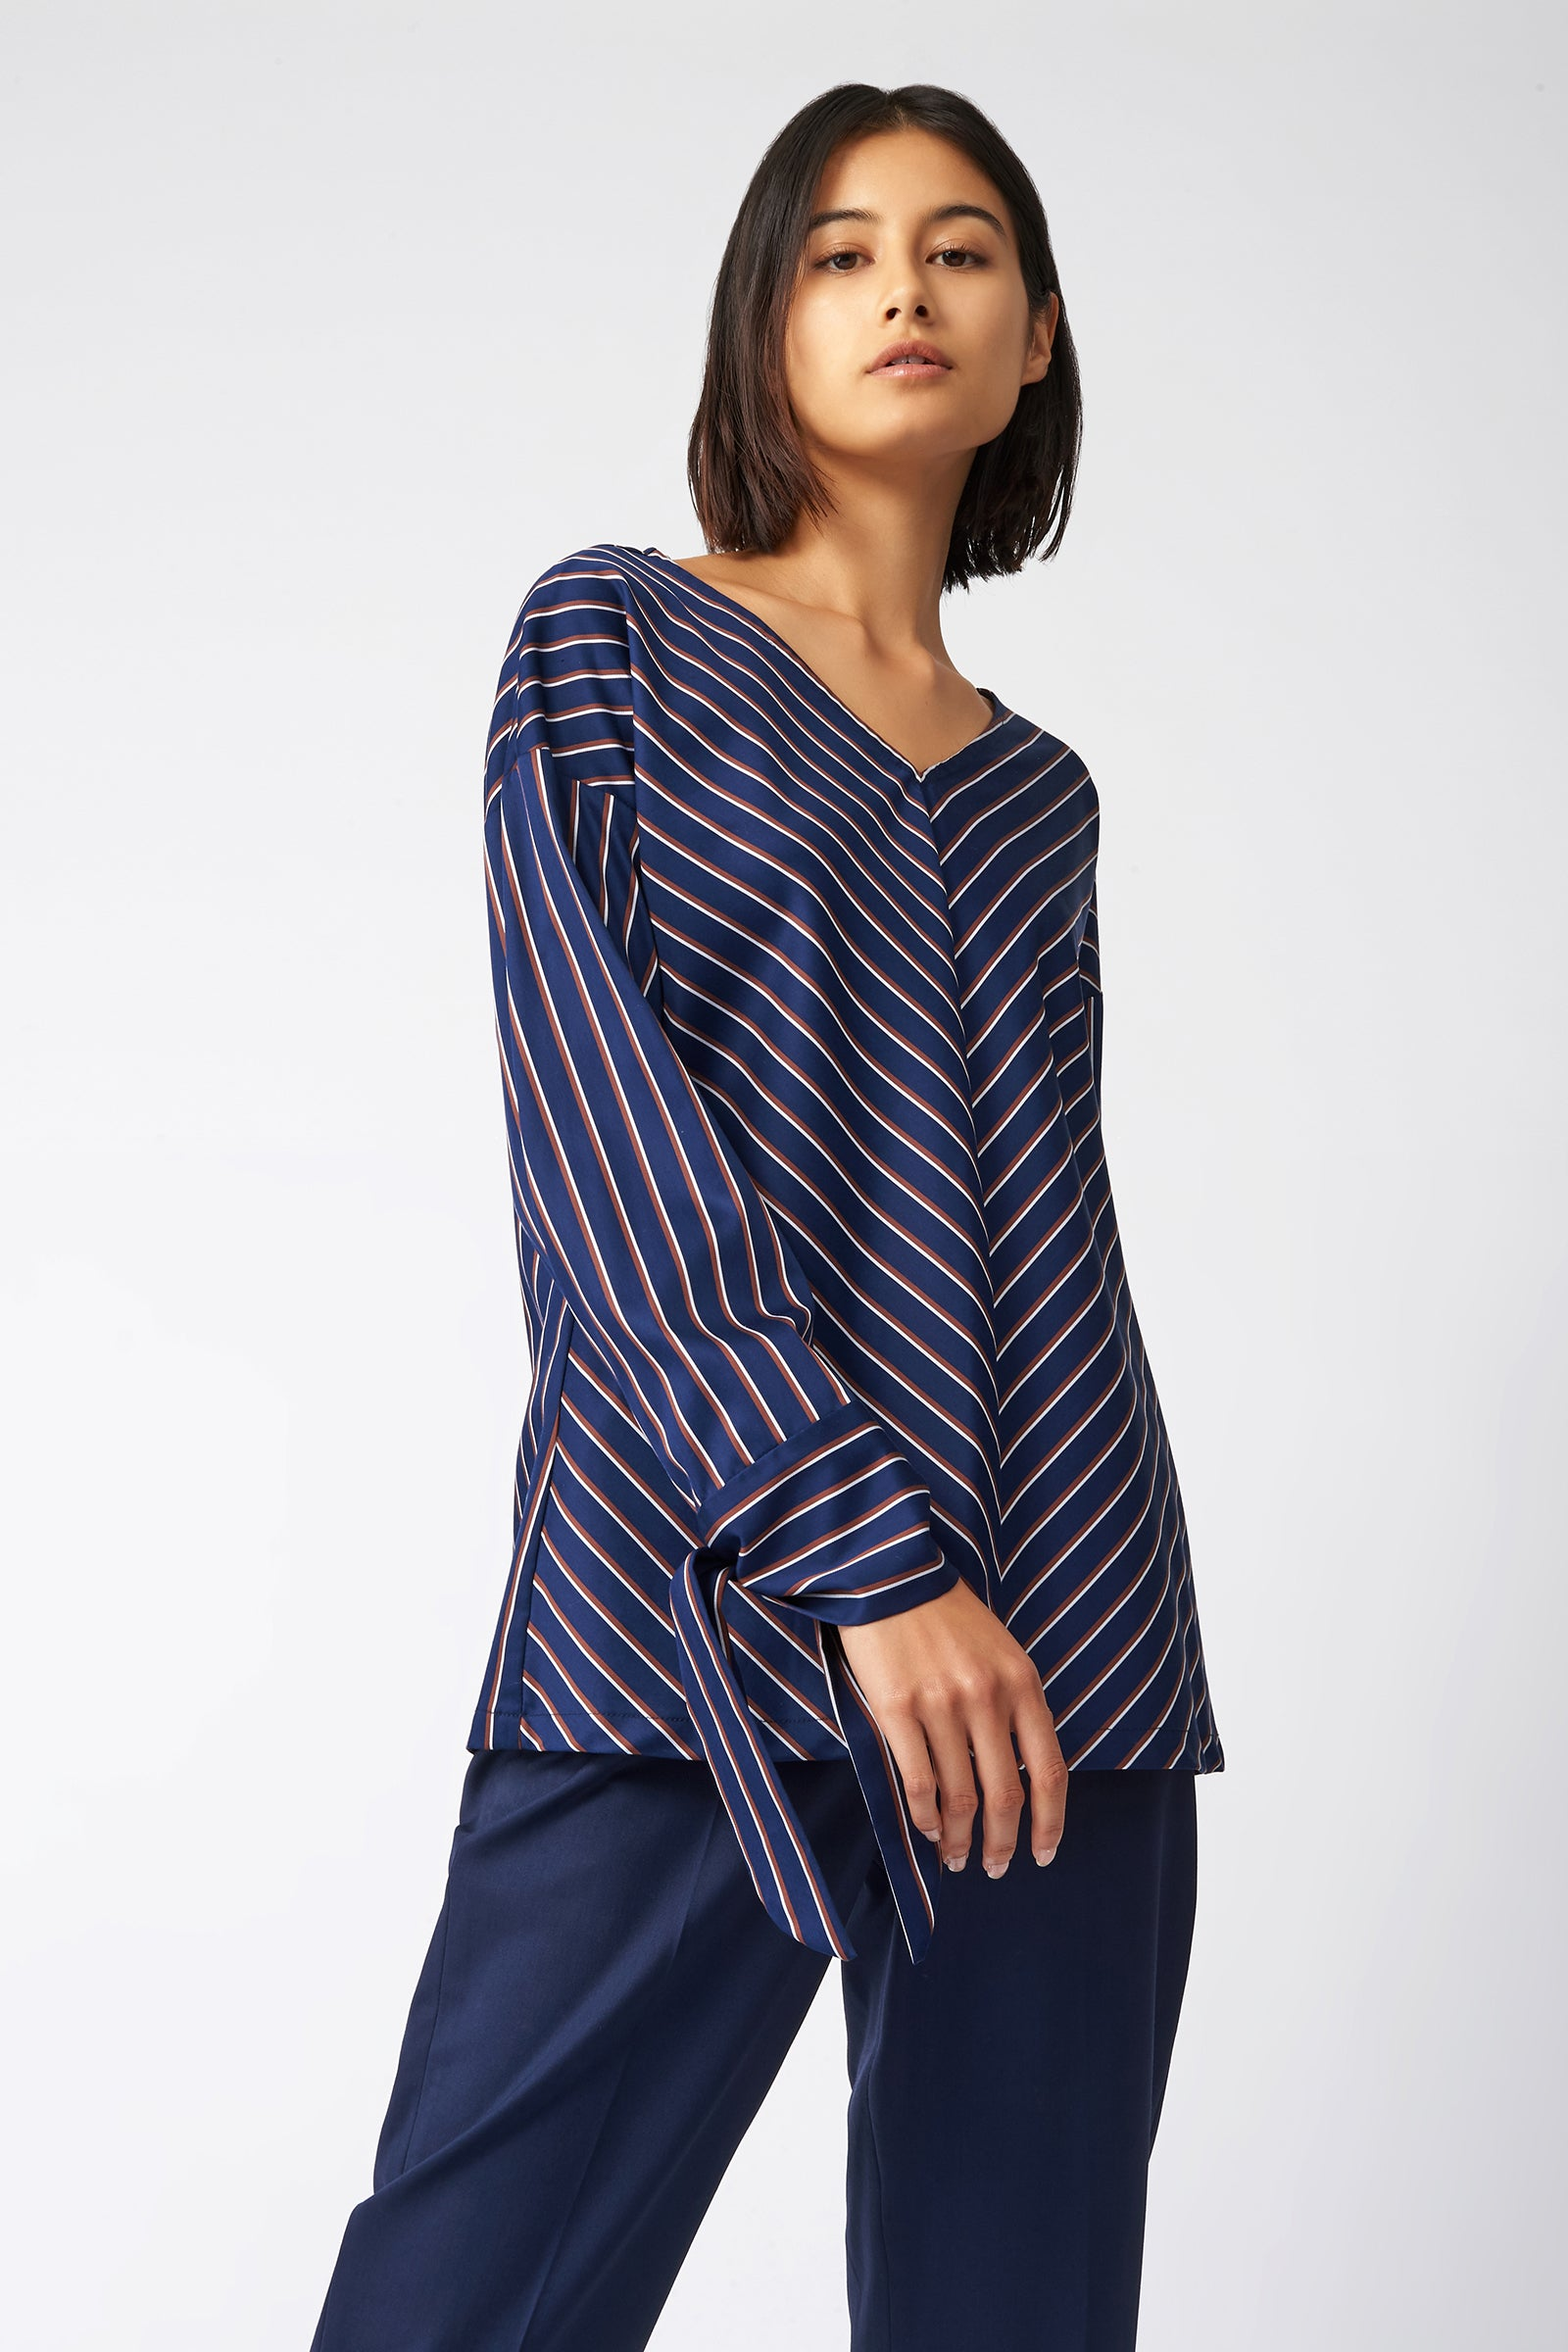 Kal Rieman Tie Sleeve V Neck in Navy Stripe on Model Front View